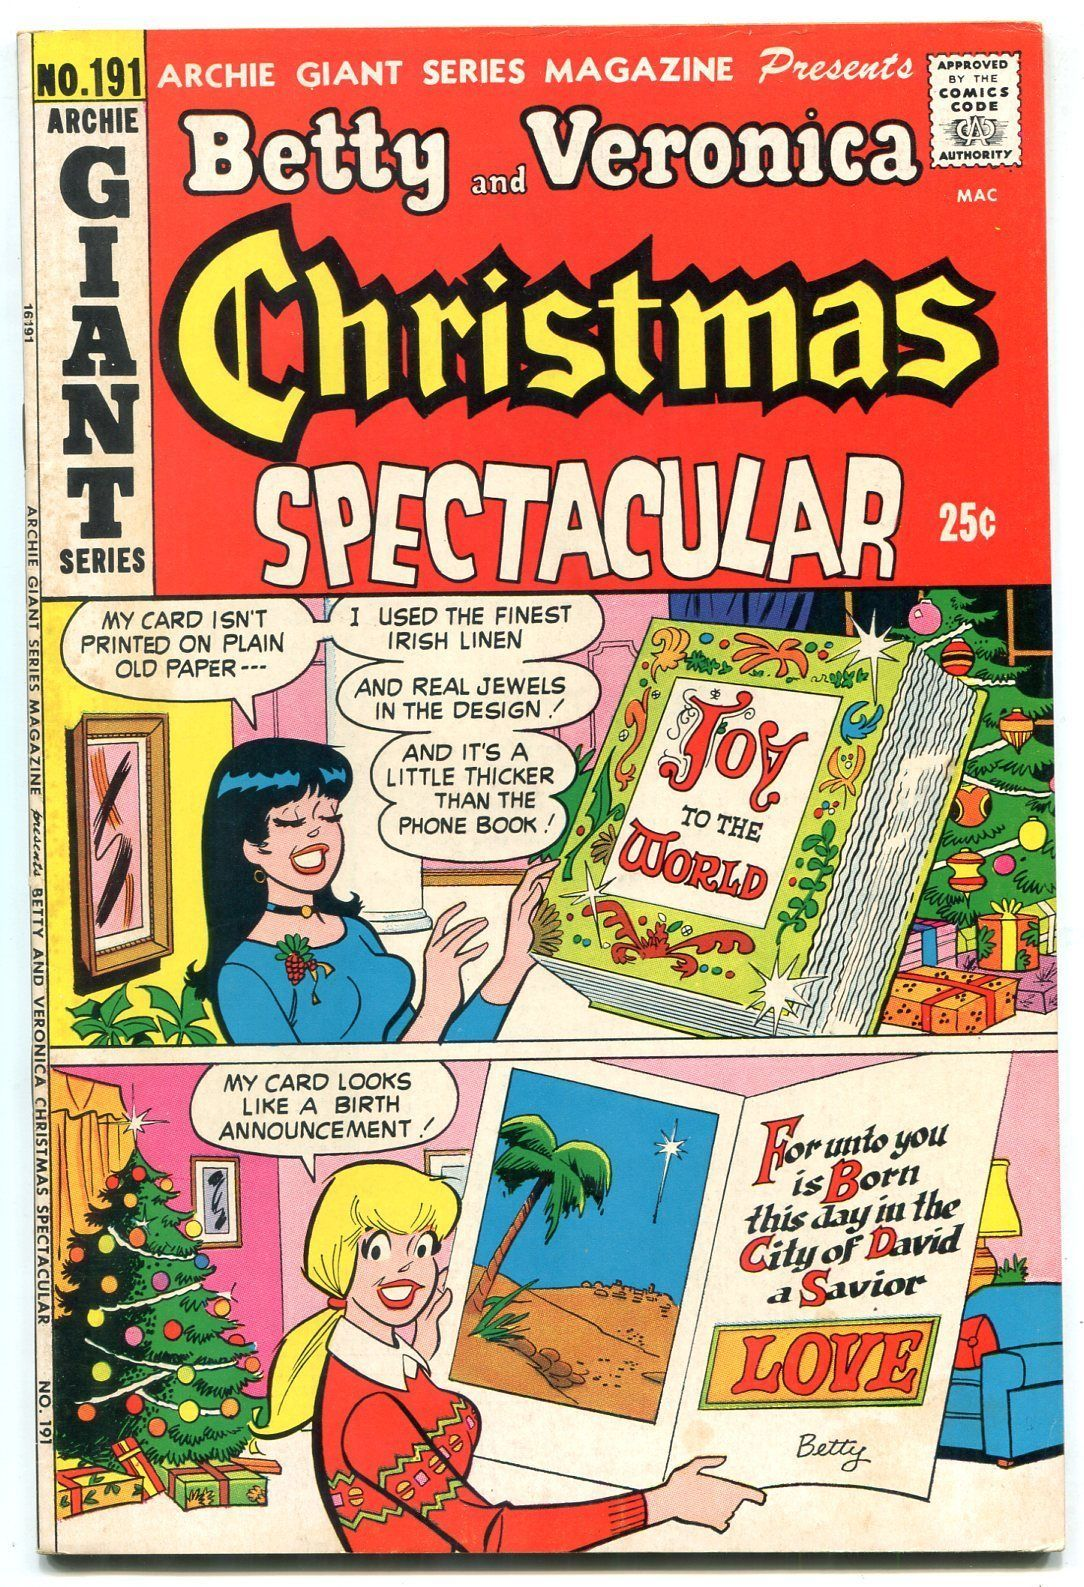 Betty and Veronica Christmas Spectacular- Archie Giant Series #191 1972 - $40.35